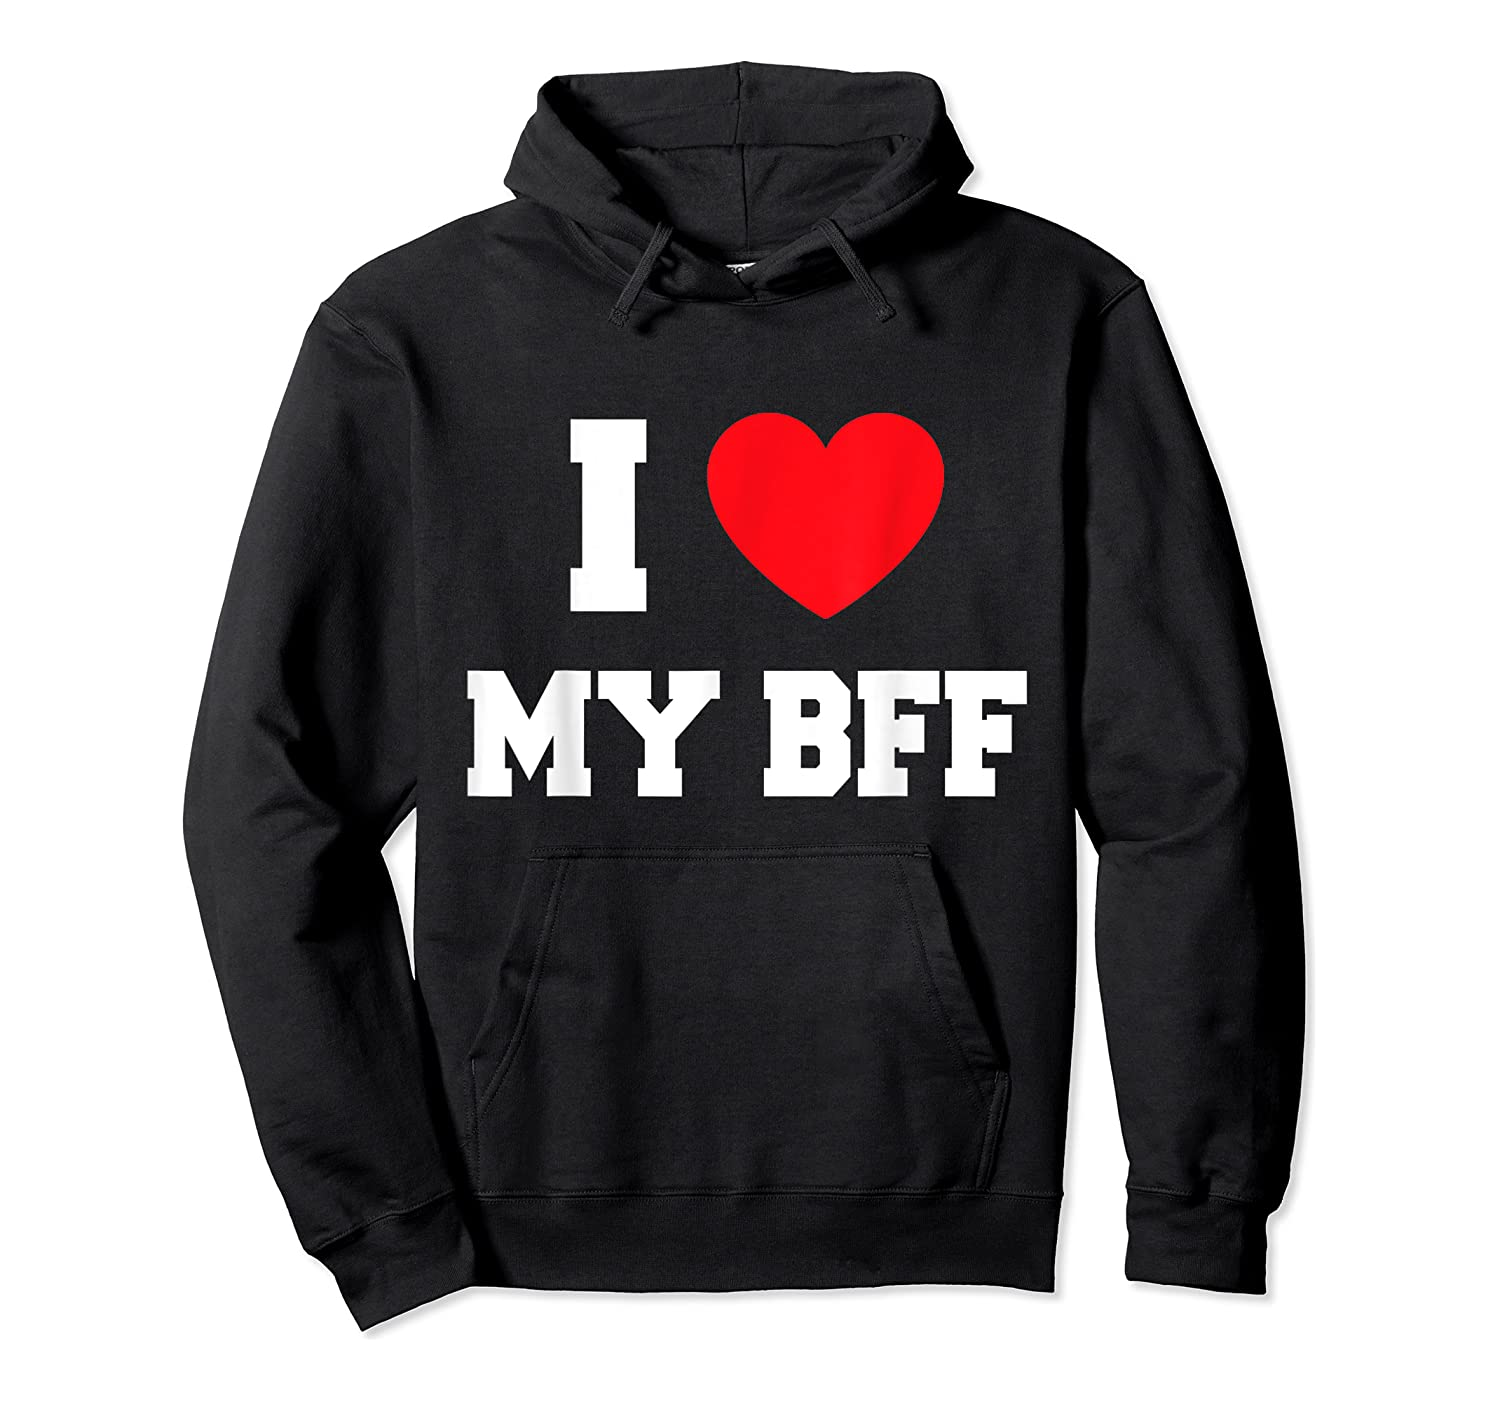 Love My Bff Shirts Unisex Pullover Hoodie